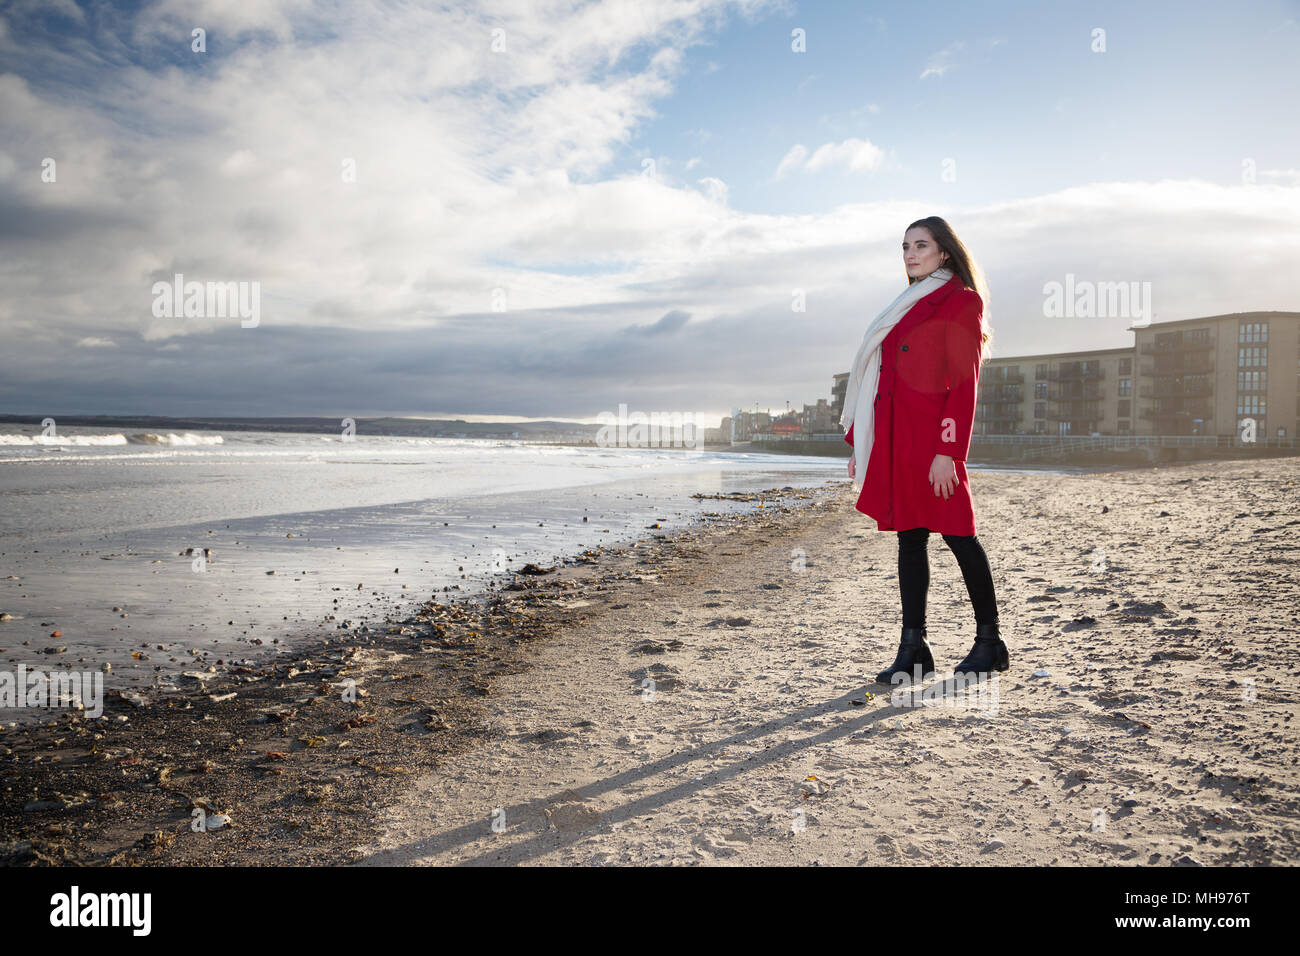 Woman at the beach, showing emotion and expression dealing with anxiety, grief, depression and mental health. Stock Photo